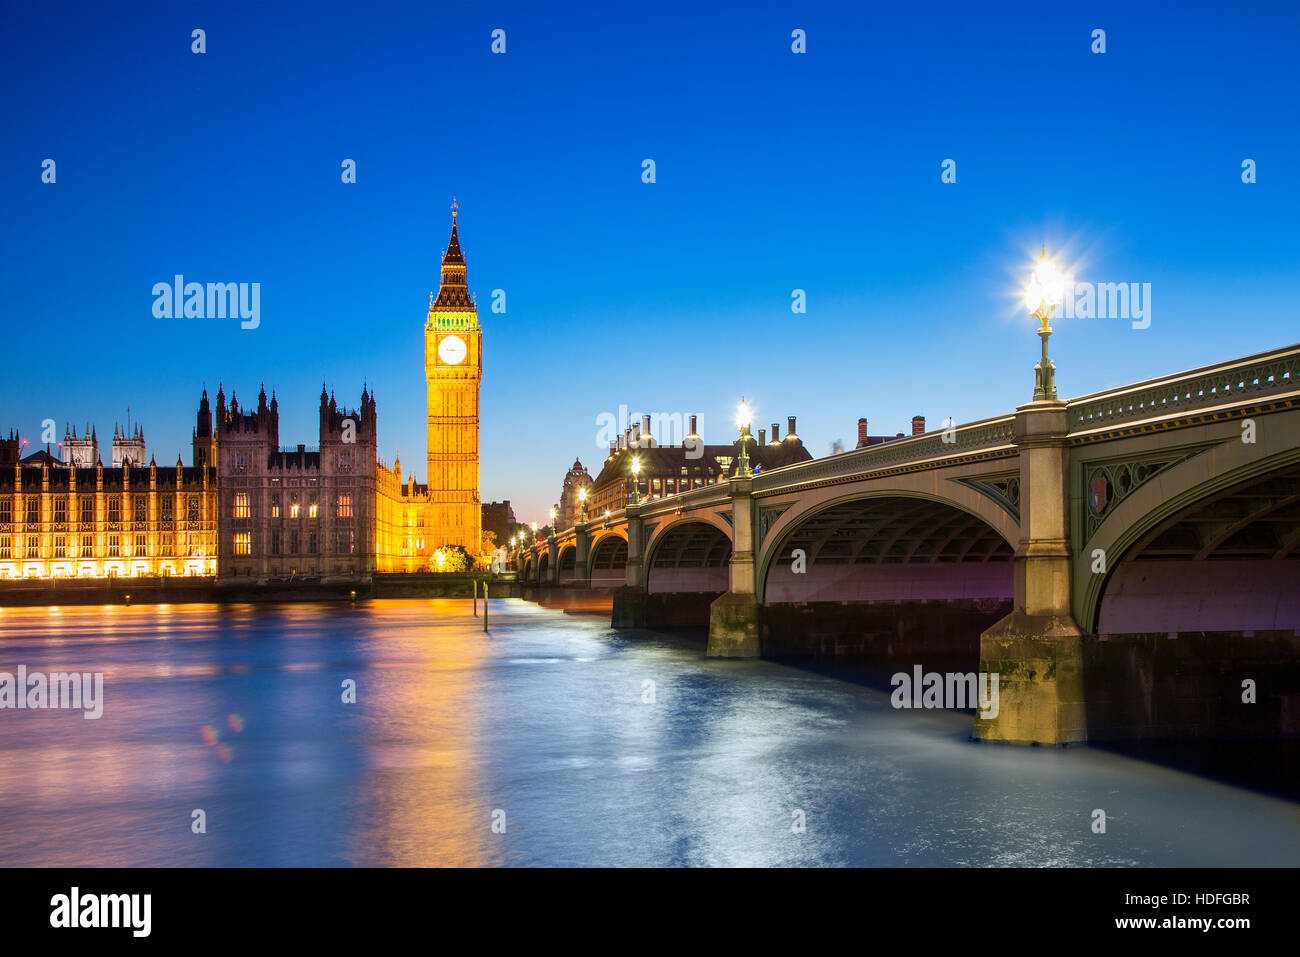 Big Ben Clock Tower and Parliament house at city of Westminster, London England UK - Stock Image